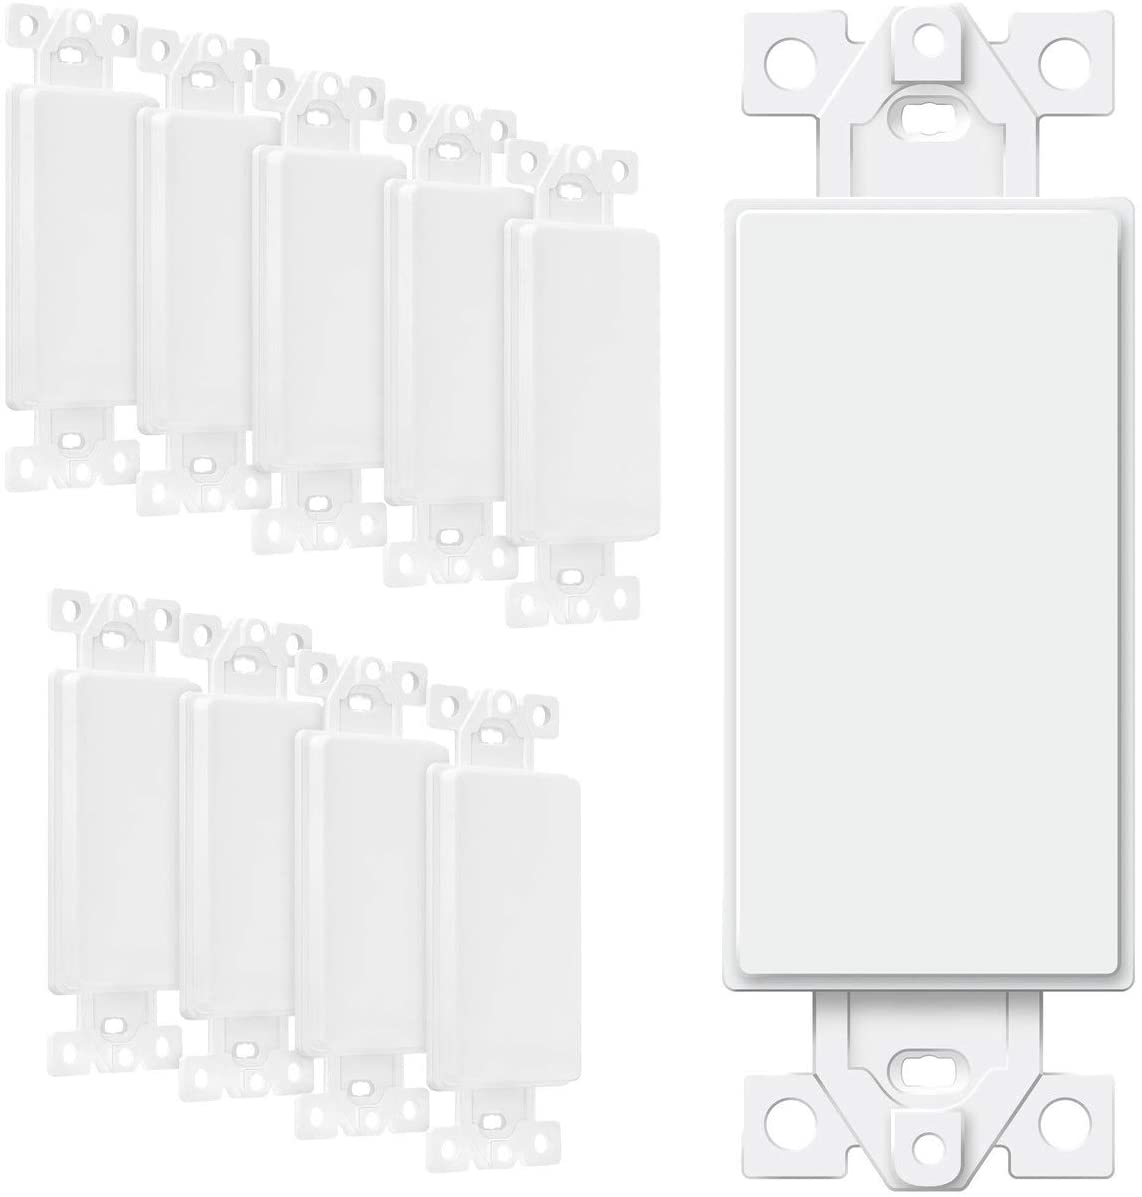 ENERLITES Blank Adapter Insert for Decorator Wall Plates, Unbreakable Polycarbonate Thermoplastic, UL Listed, 6001-W-10PCS, White, 10 Piece